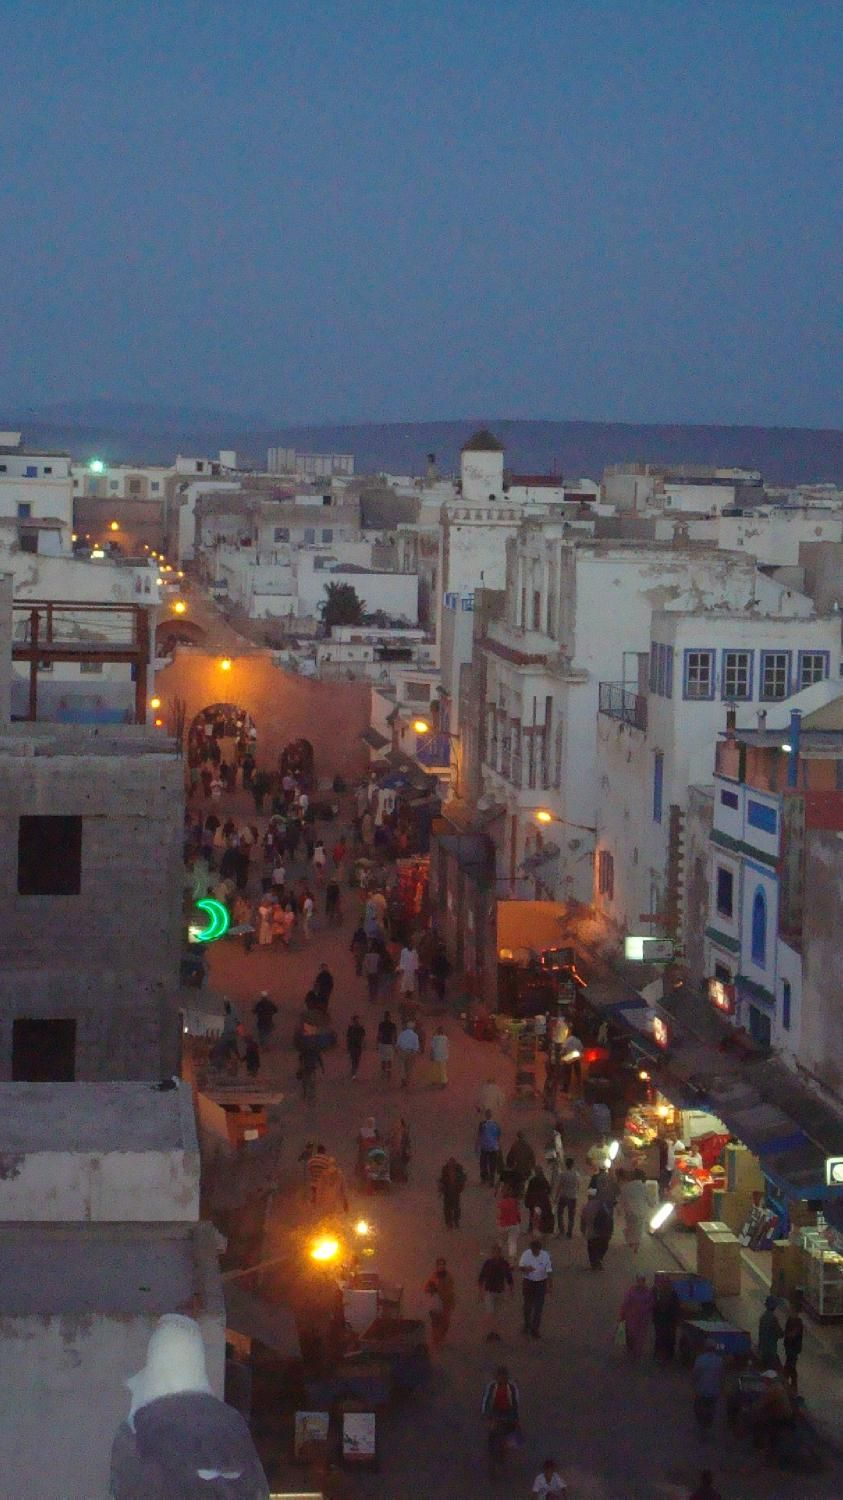 Book Essaouira Wind Palace, Essaouira on TripAdvisor: See 41 traveller reviews, 98 candid photos, and great deals for Essaouira Wind Palace, ranked #30 of 78 hotels in Essaouira and rated 4.5 of 5 at TripAdvisor.